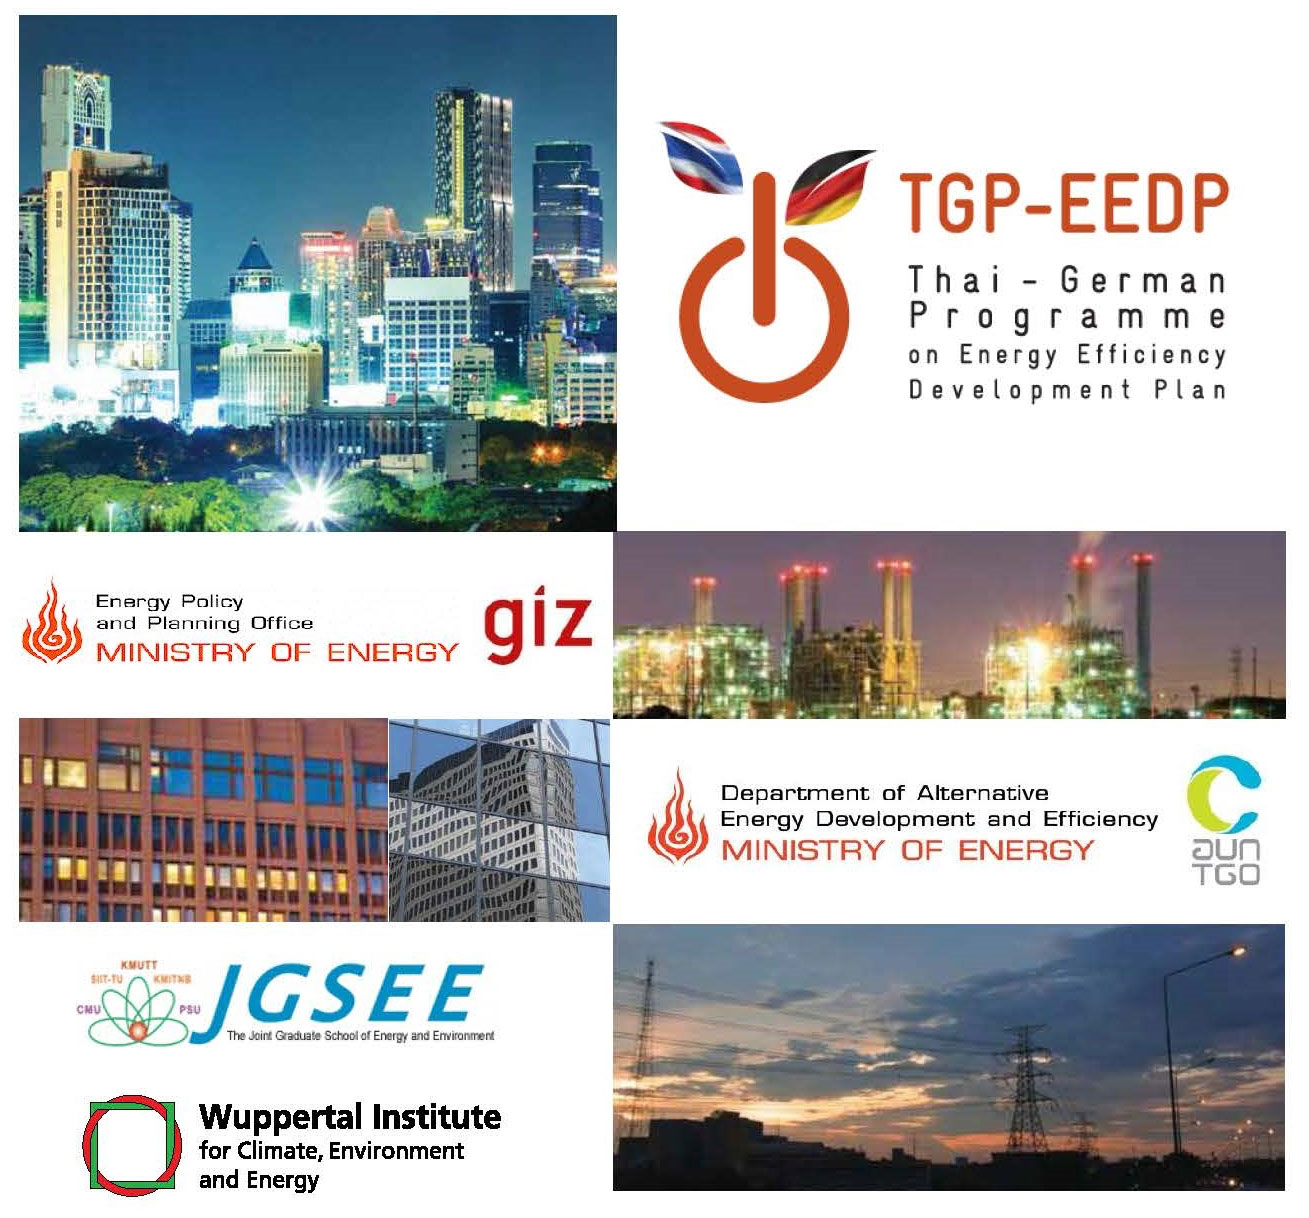 Thai-German Programme on Energy Efficiency Development Plan (TGP-EEDP)